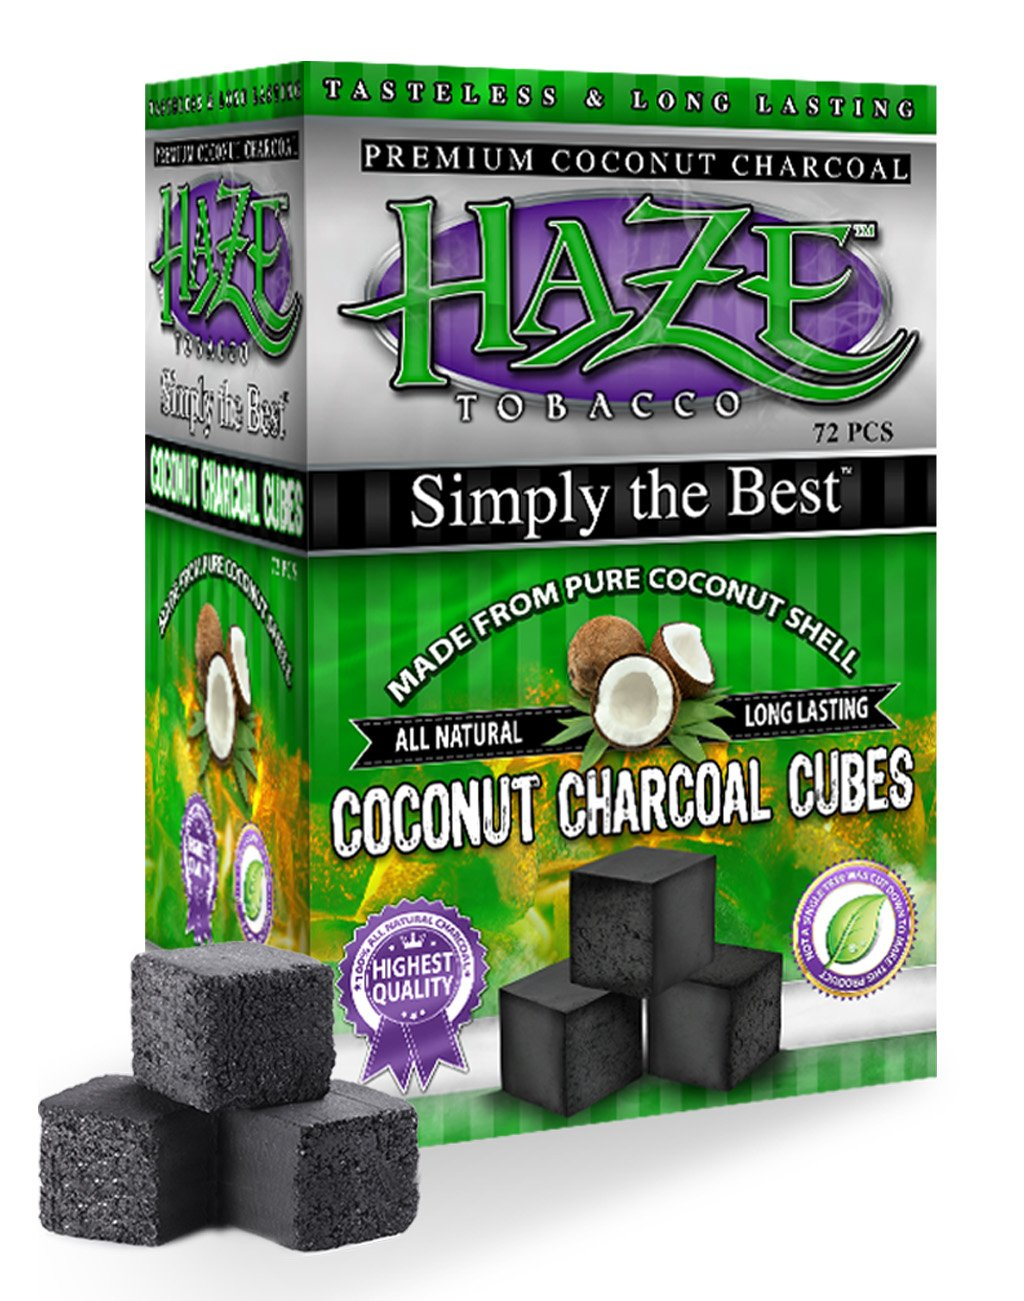 HAZE CUBE COCONUT CHARCOAL SUPPLIES FOR HOOKAHS – 72pc (1kg) or 1440pc (20kg) Non-quick light shisha coals for hookah pipes. All-natural coal accessories that are Tasteless, Odorless, & Chemic (1440) by Haze (Image #2)